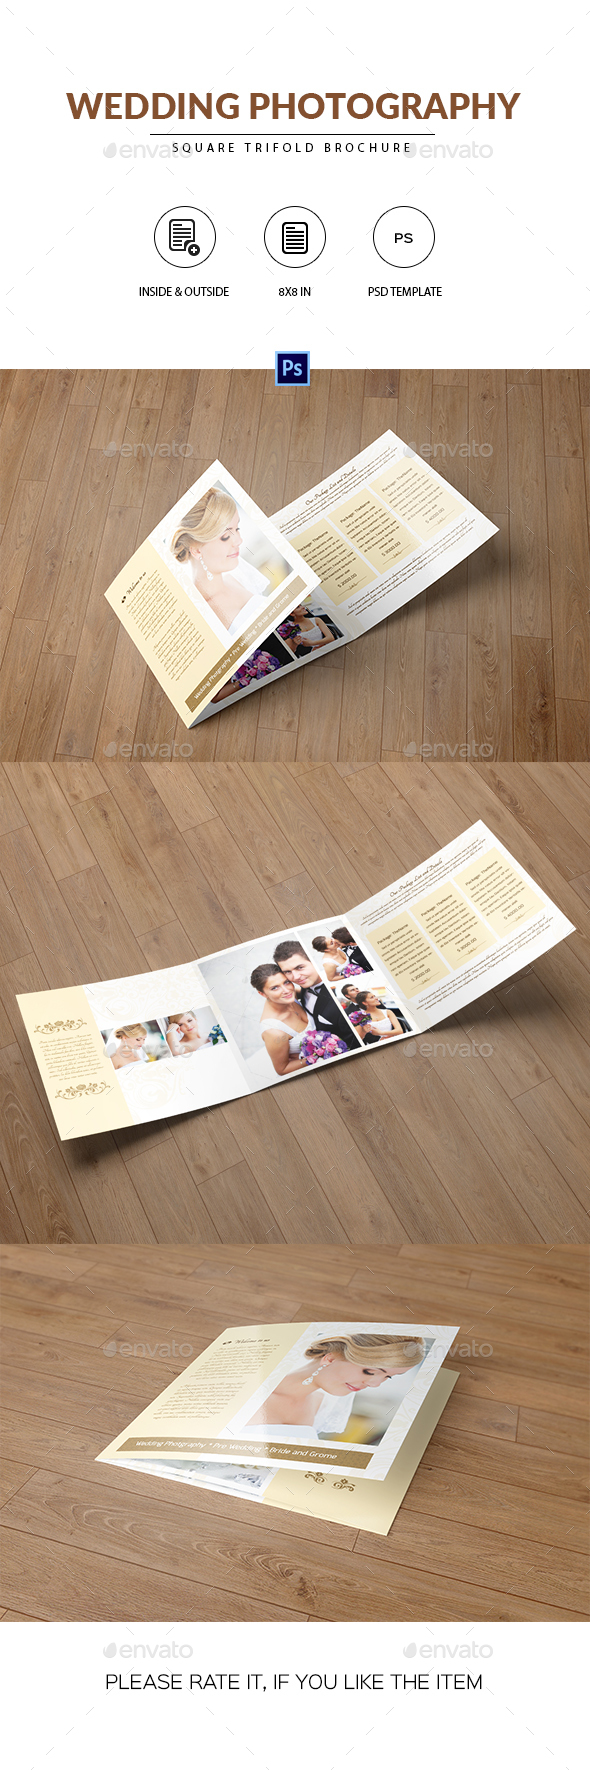 Square Trifold for Wedding Photographer - Catalogs Brochures